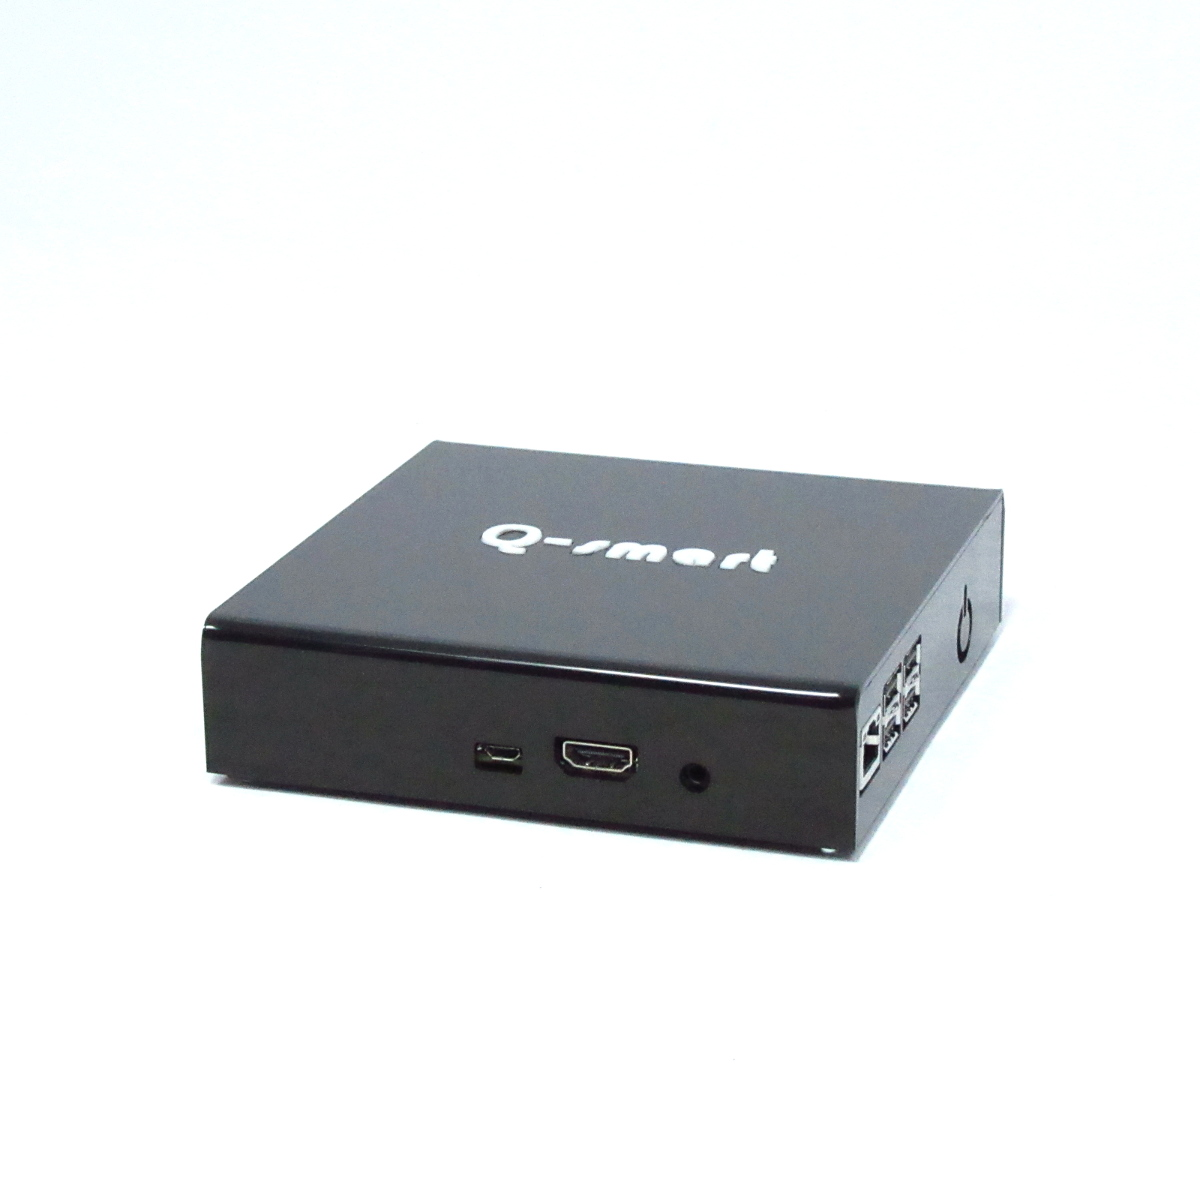 Qsmart cloud mini server